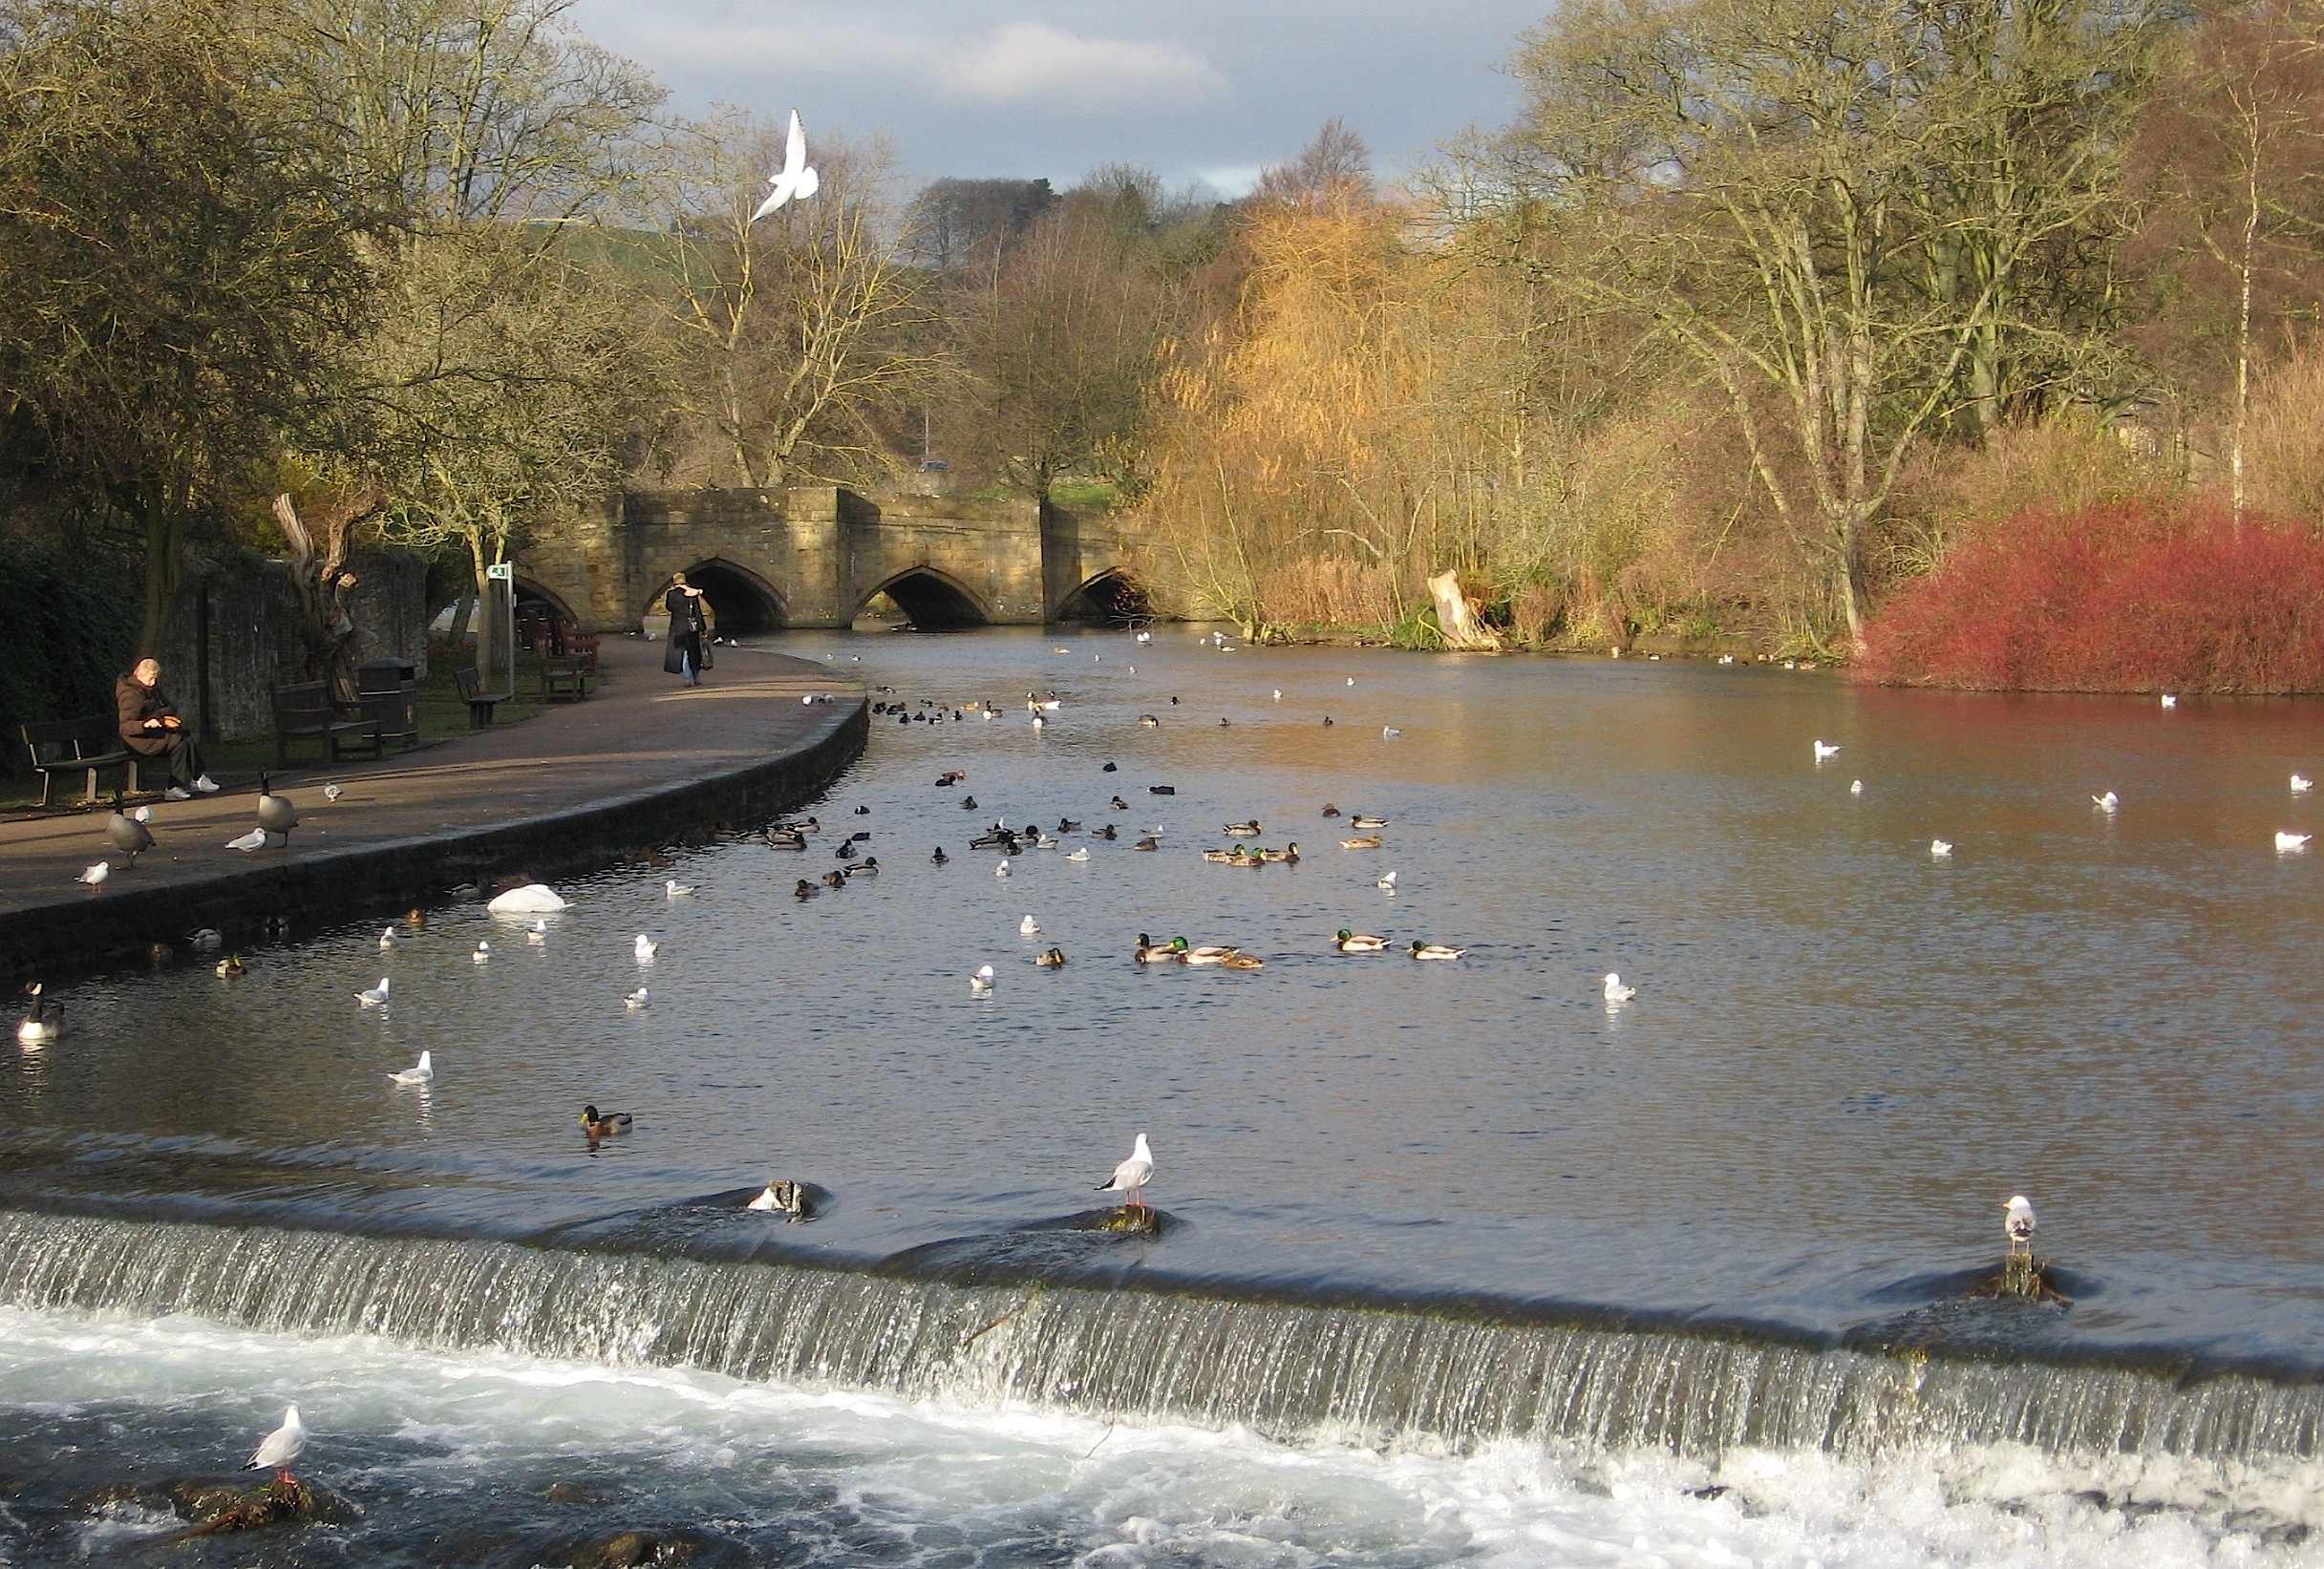 bakewell dating At the old original bakewell pudding shop we bake all our products, including our famous bakewell pudding, fresh bread and cakes daily we ensure all.